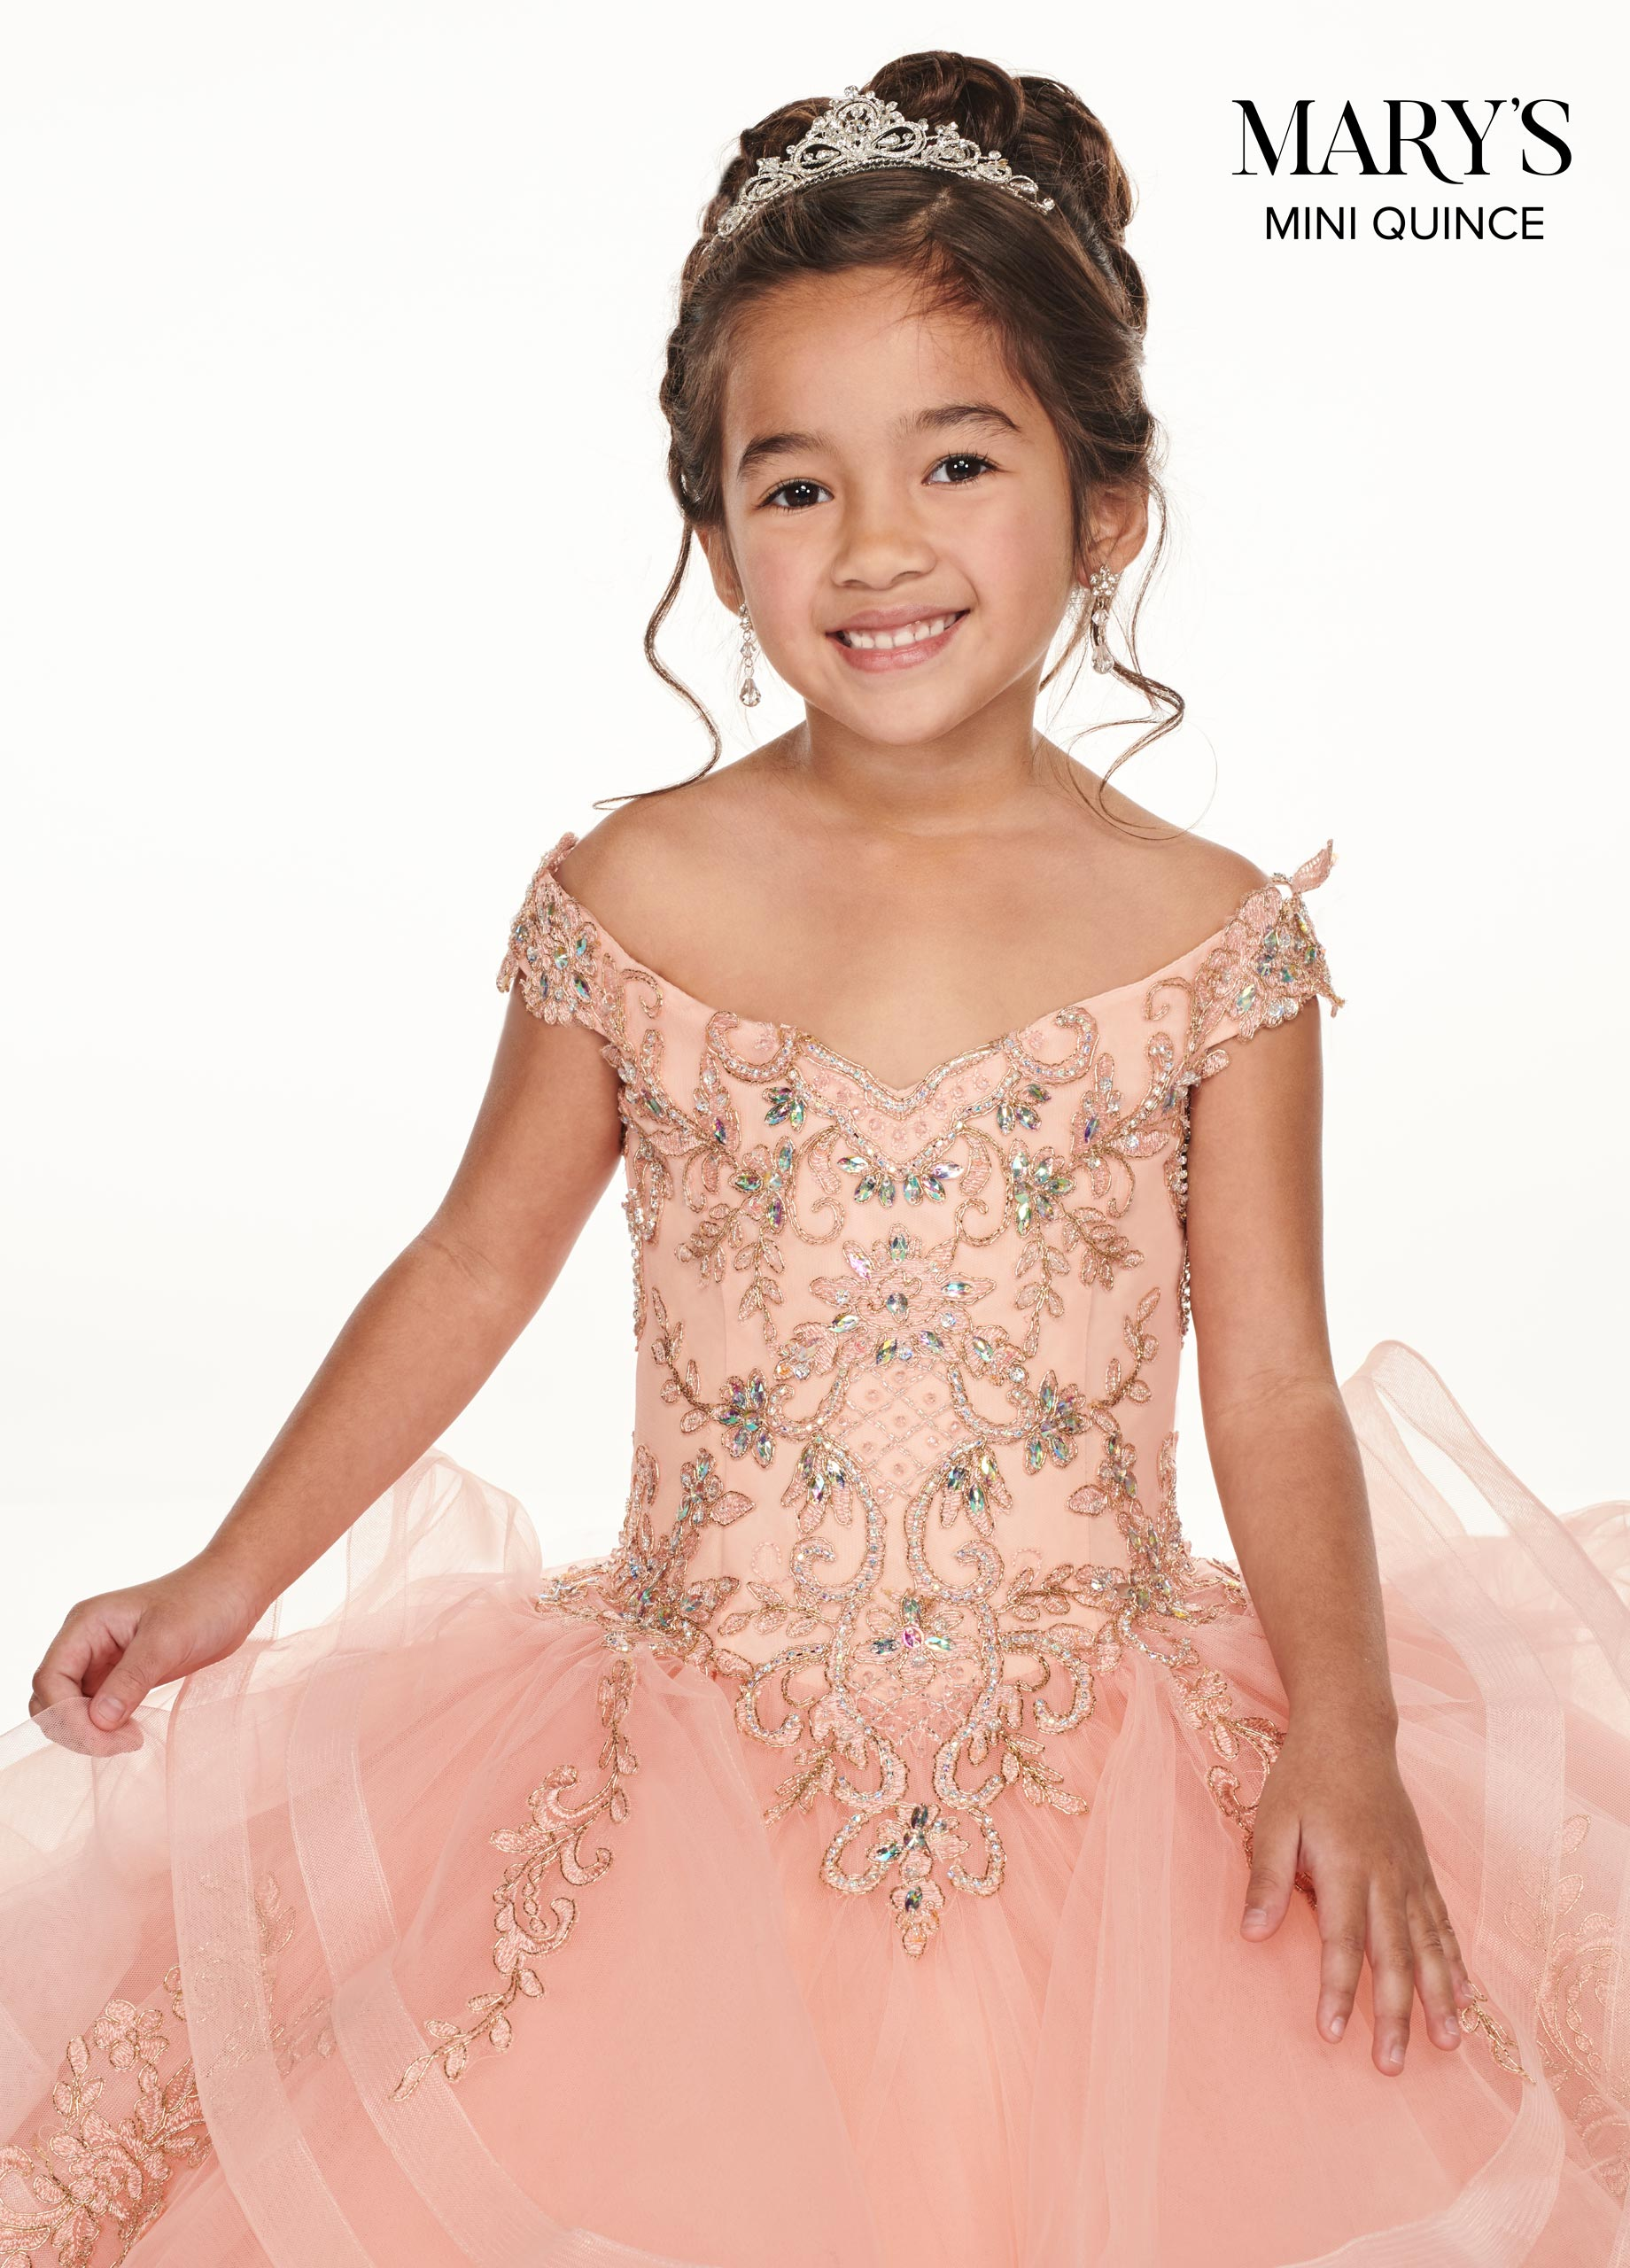 Little Quince Dresses | Mini Quince | Style - MQ4013